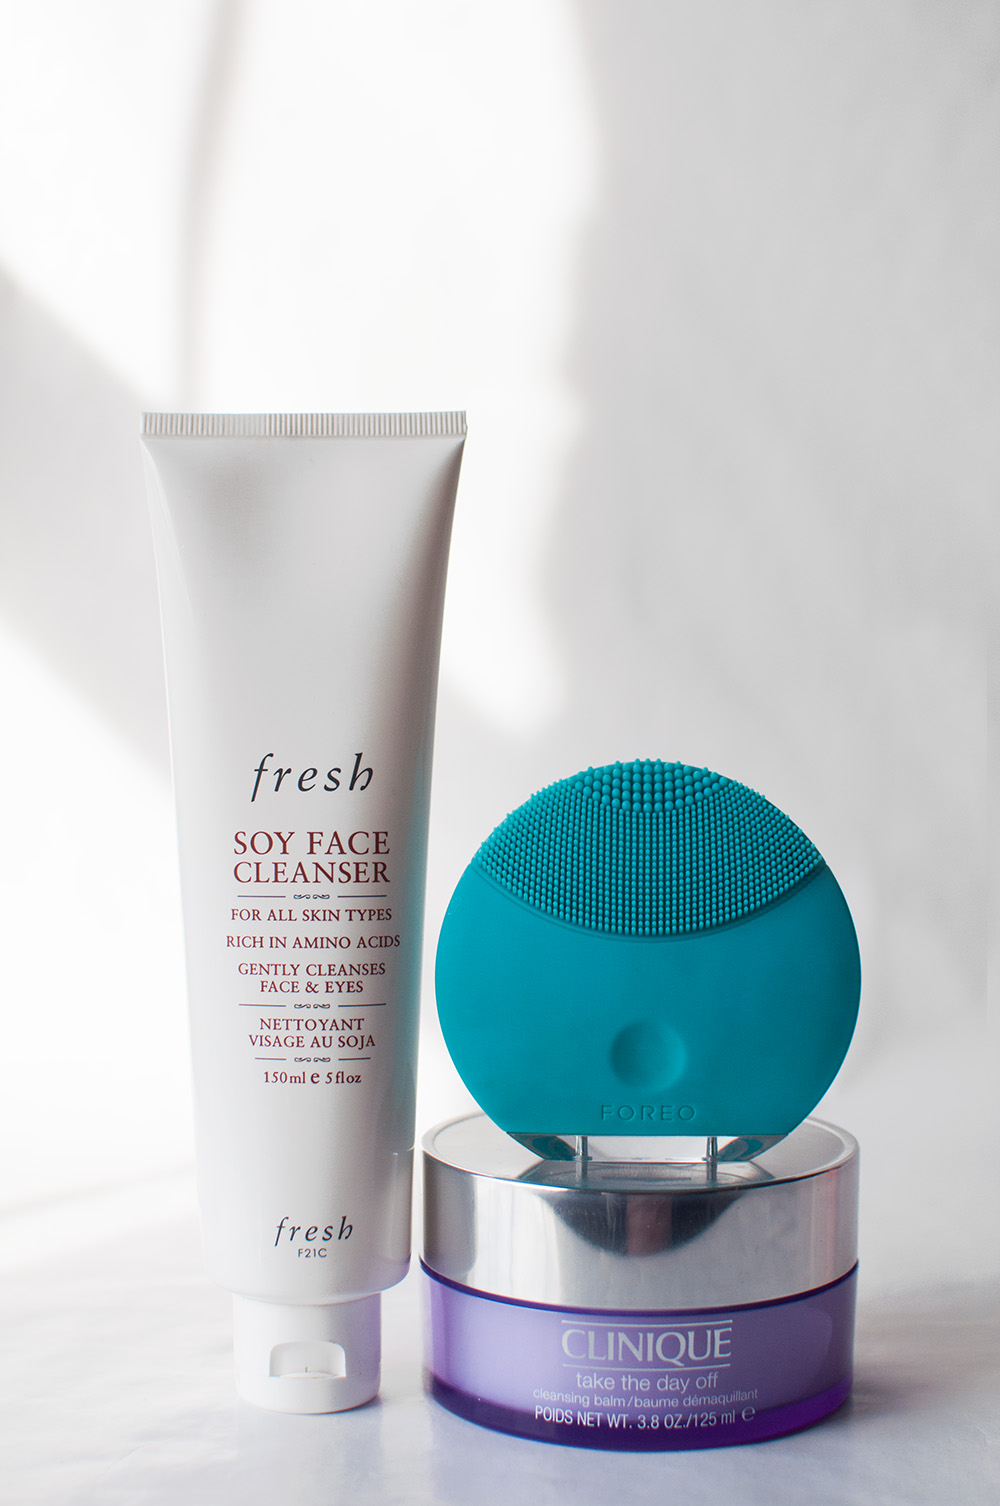 double cleanse, fresh soy face cleanser, foreo luna mini, clinique take the day off cleansing balm